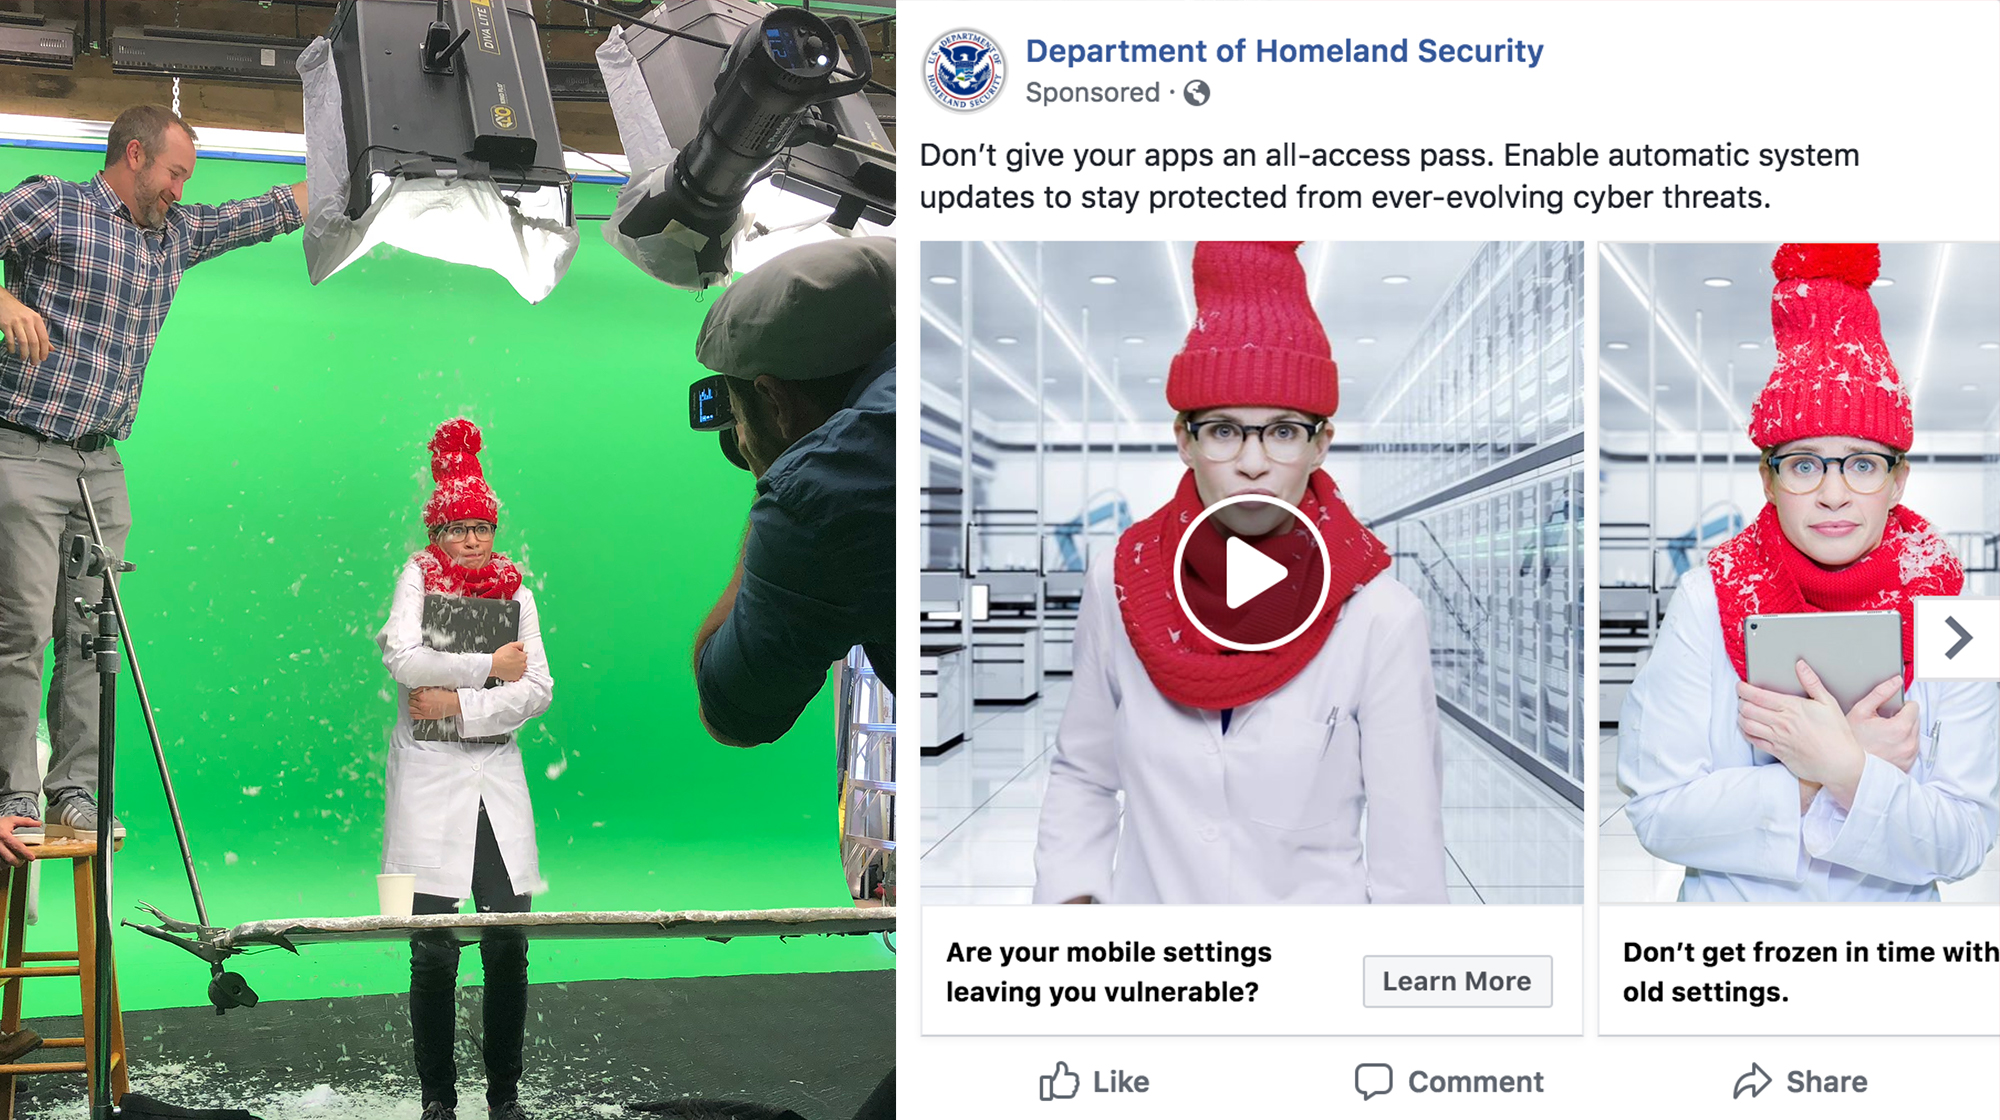 A woman in a white lab coat wears a red knitted hat and scarf while a man shakes snowflakes over her from above. To the right is a version of that image in a Facebook ad.